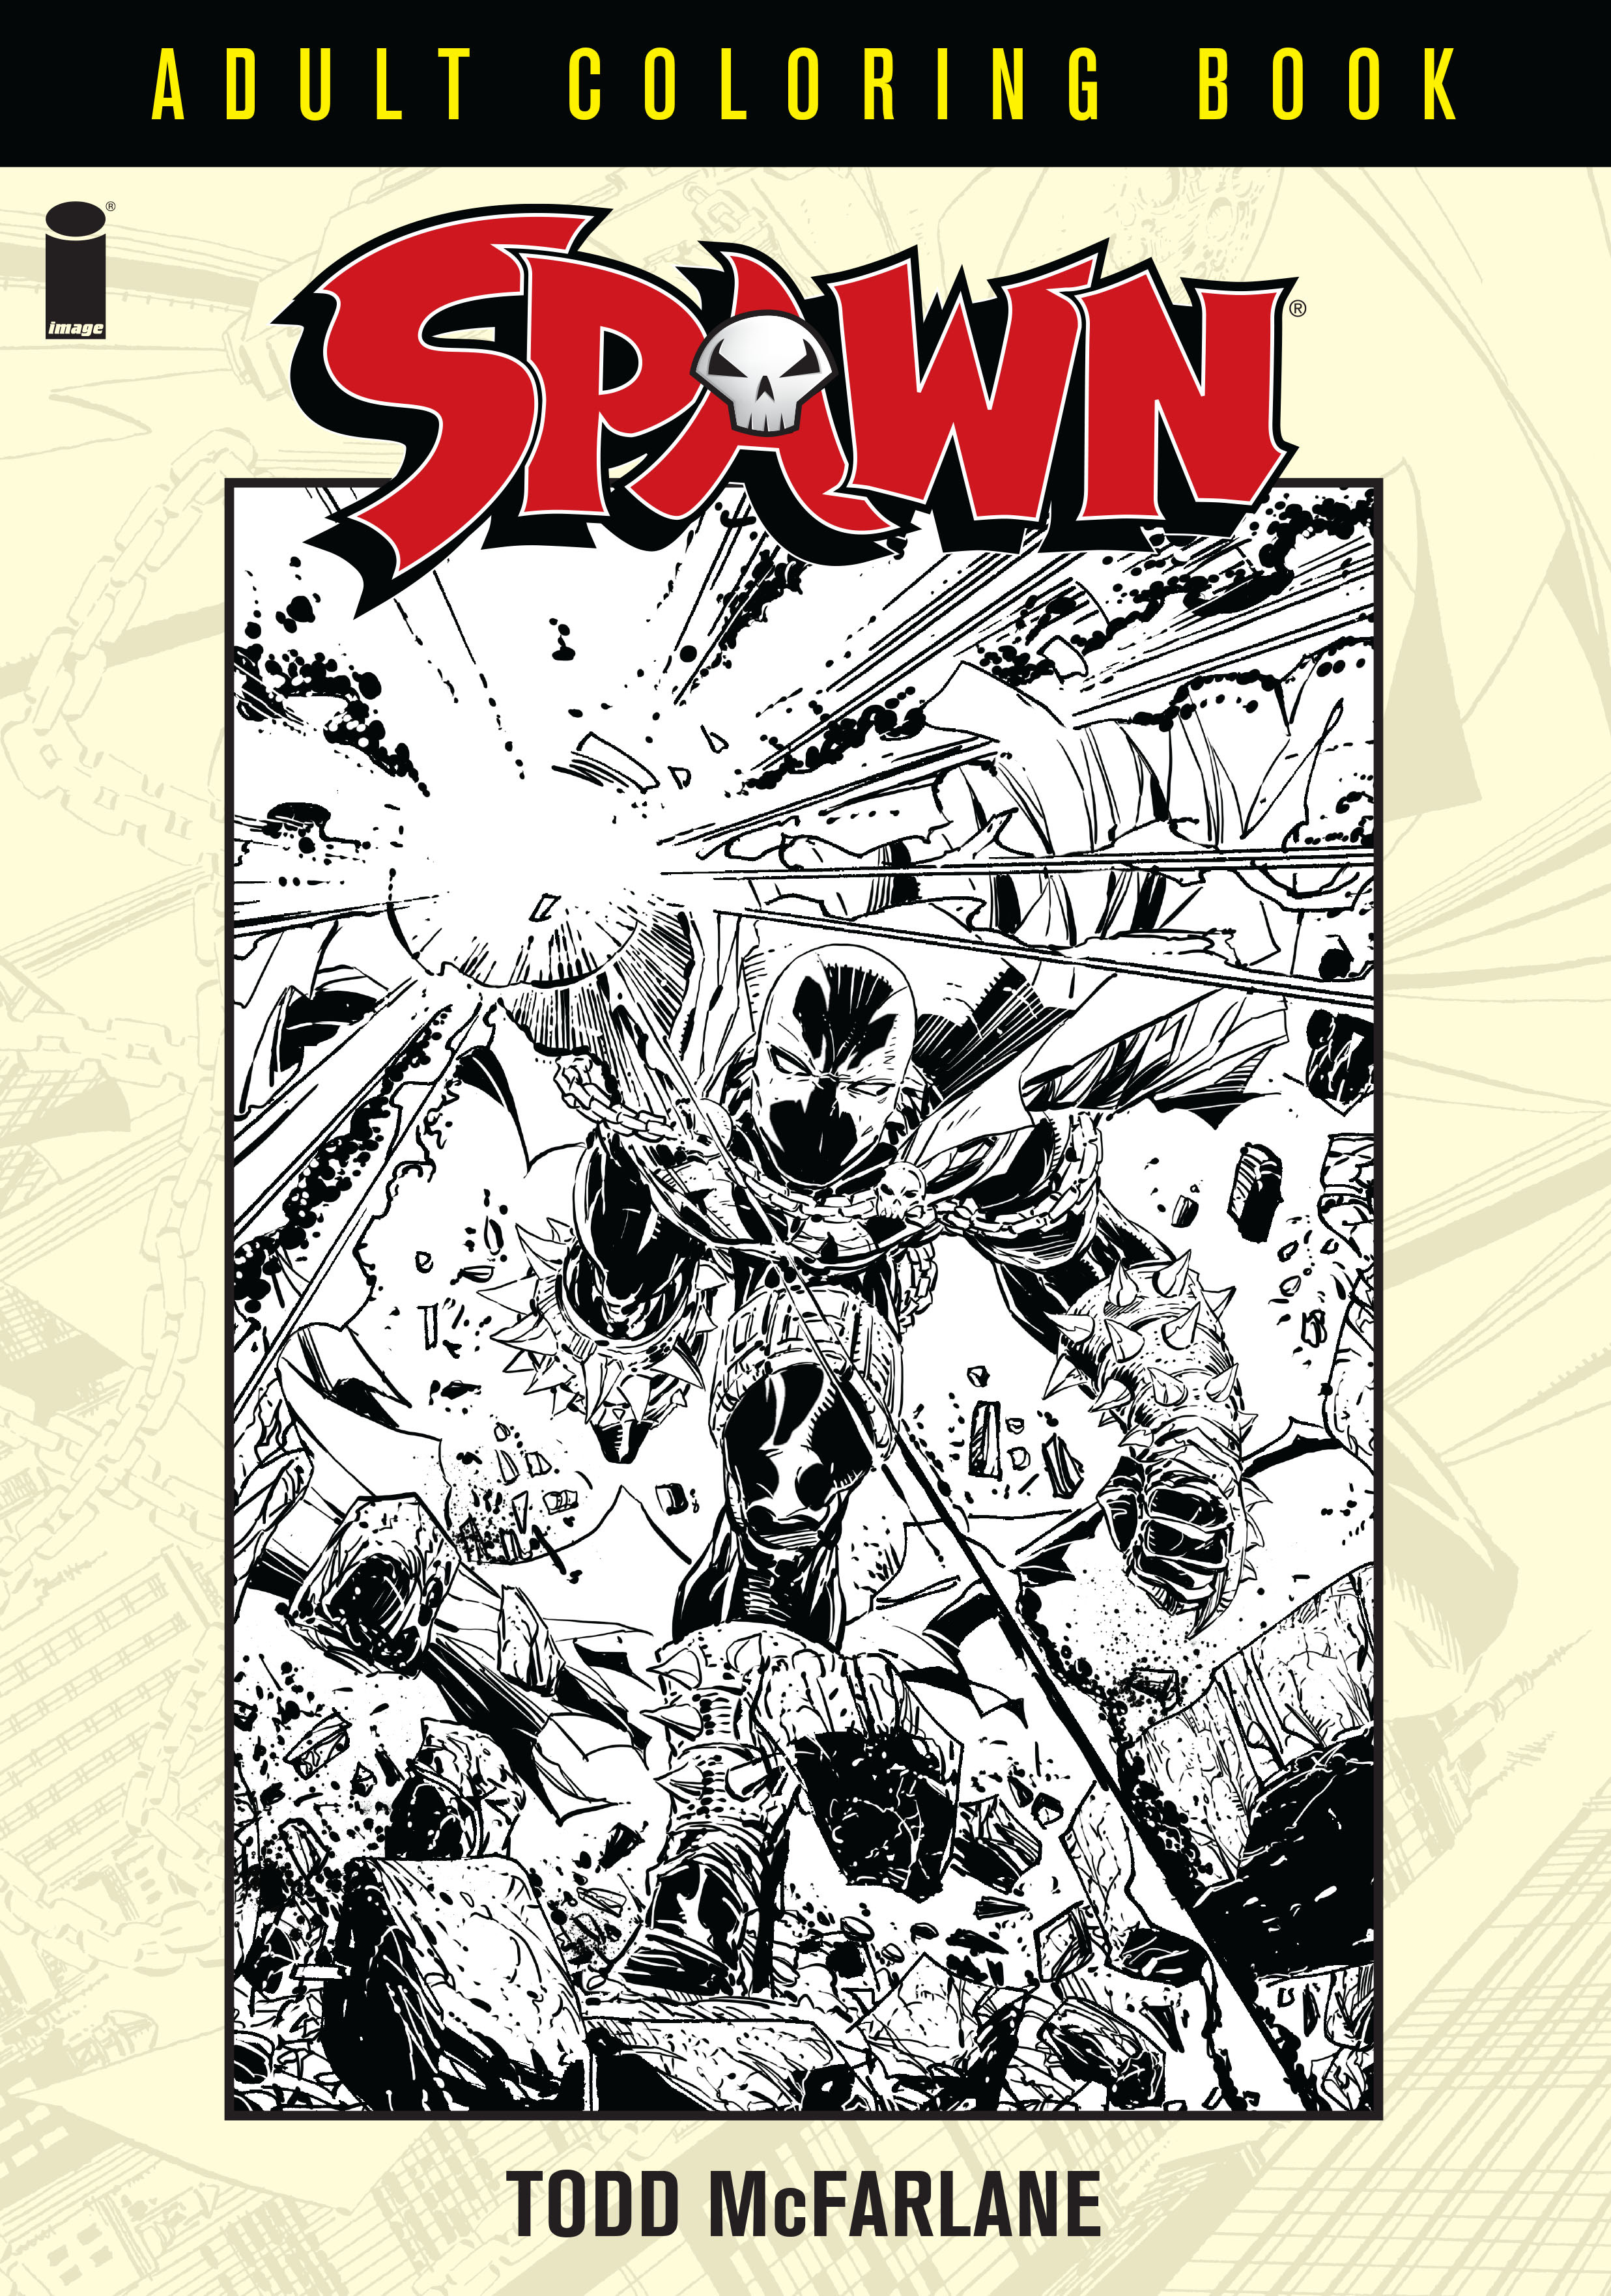 Image Preview: Spawn Coloring Book